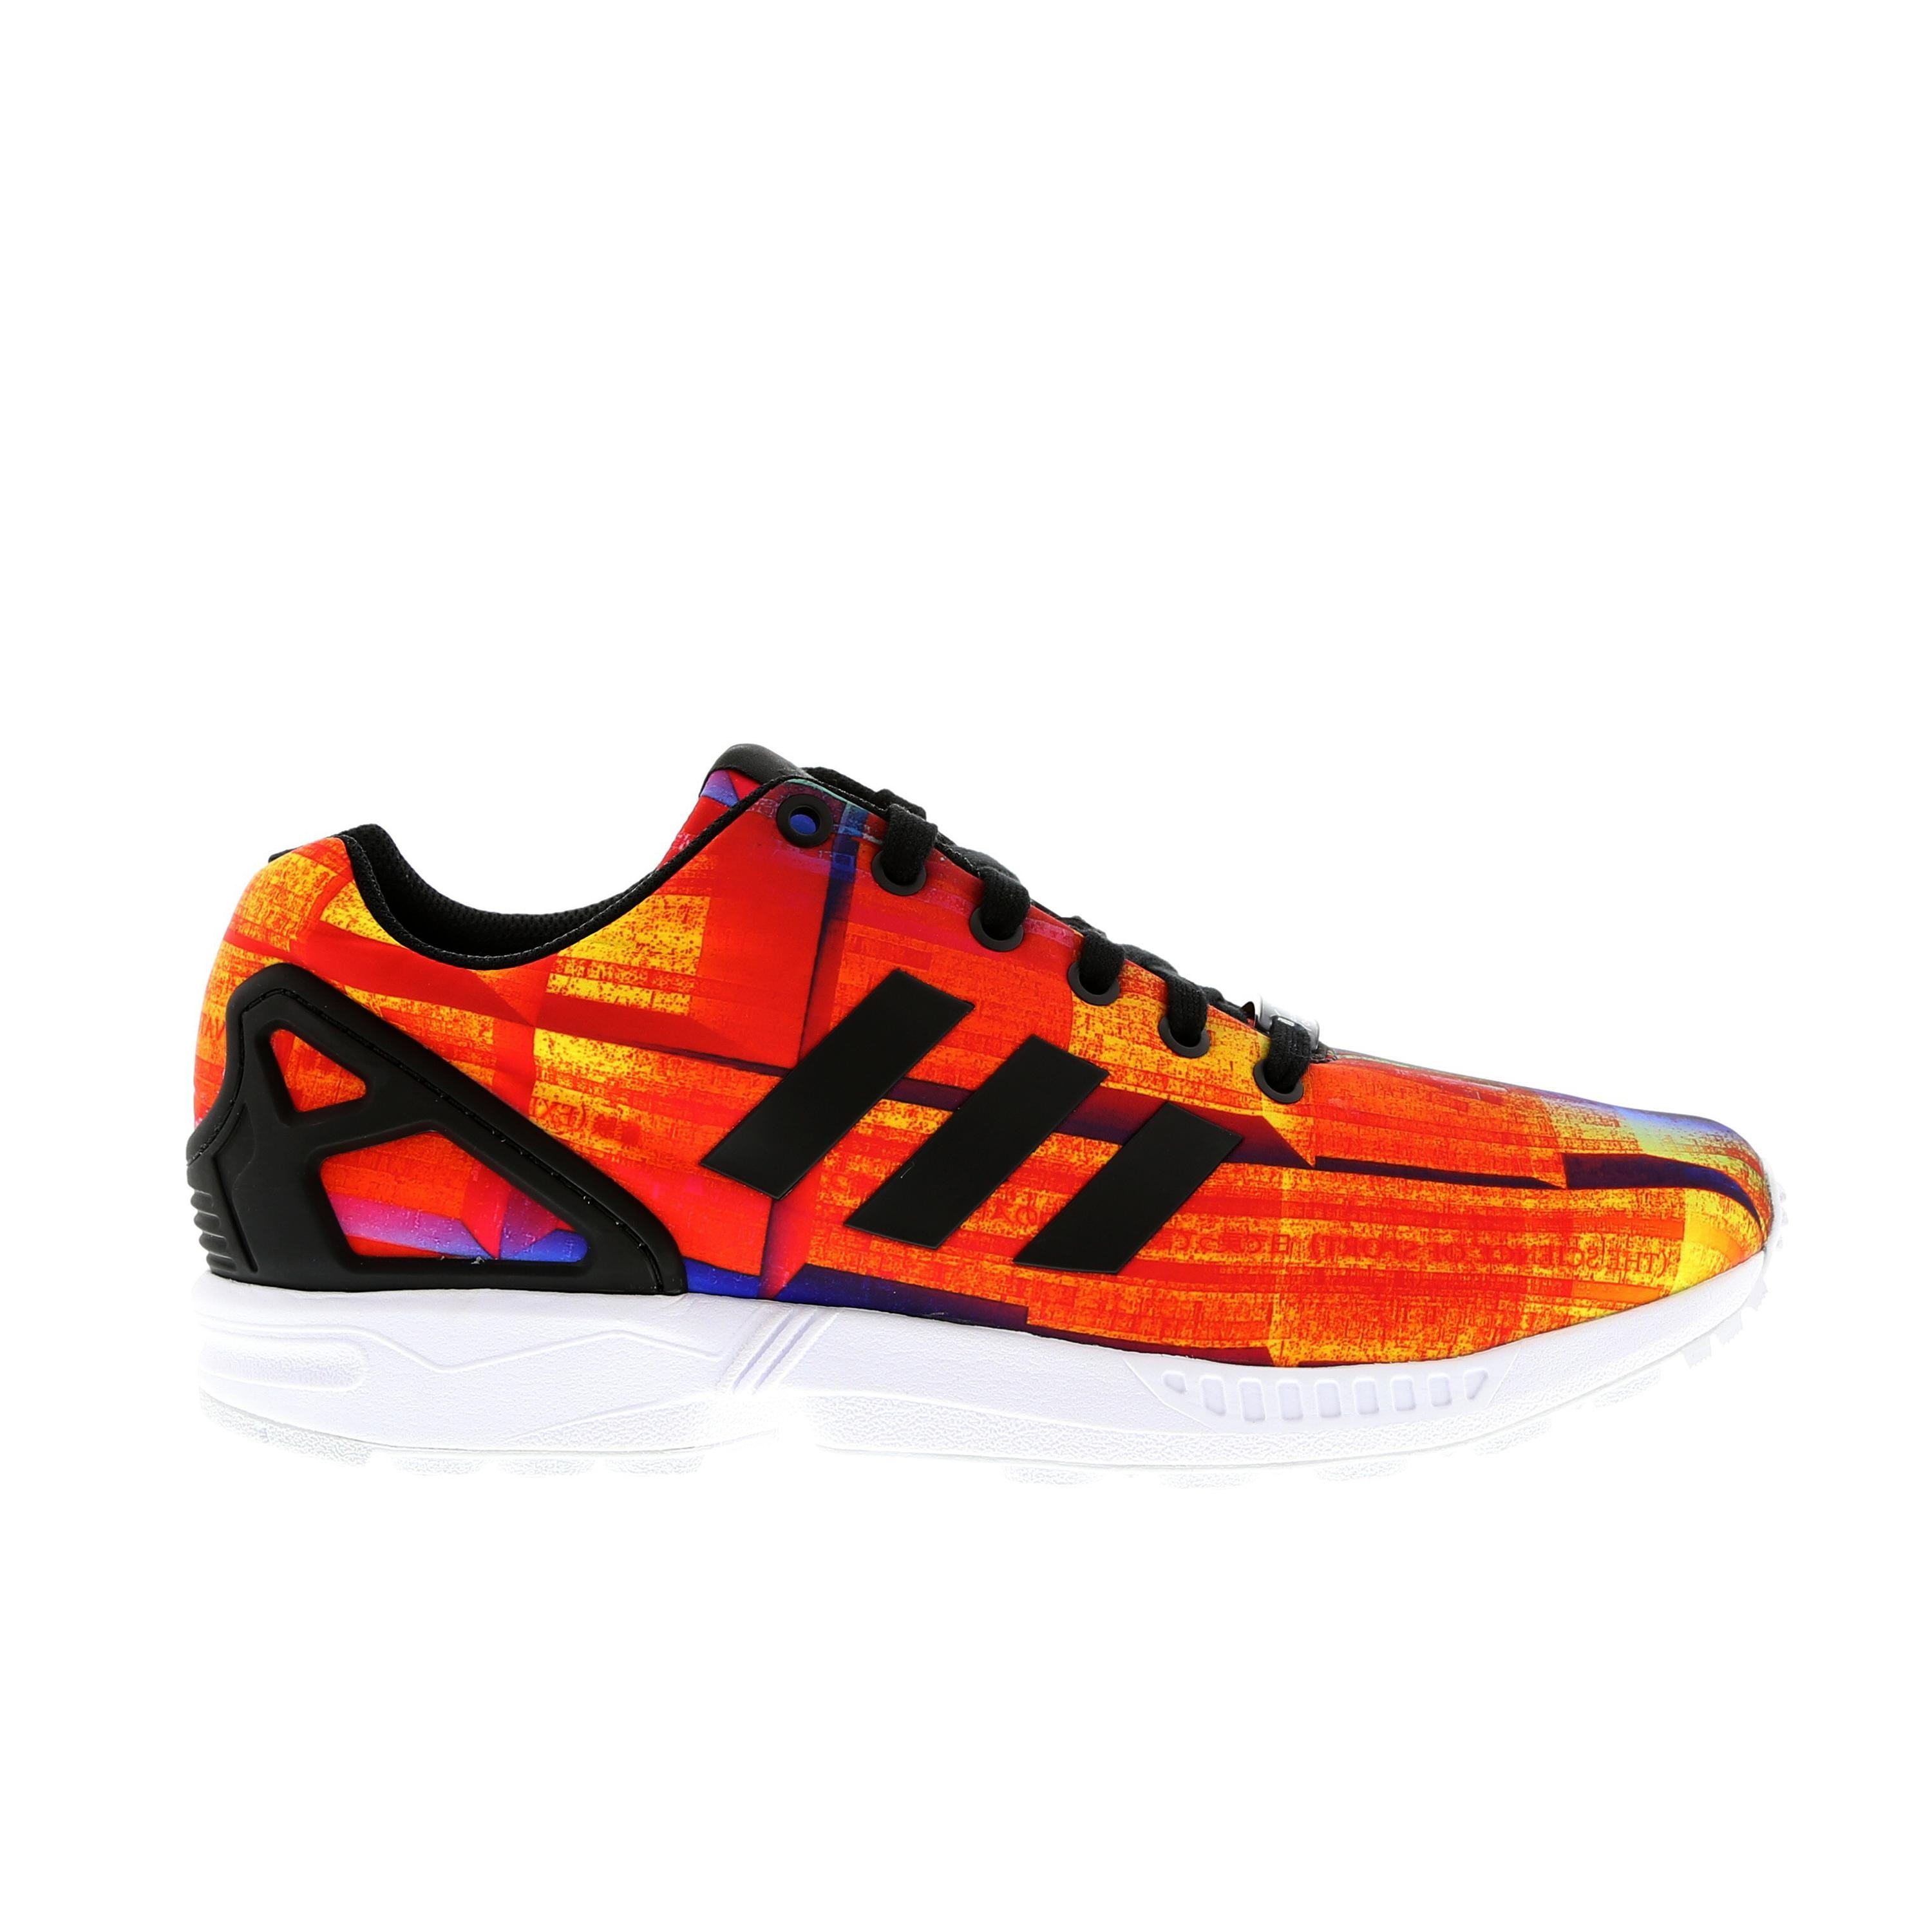 Homme Adidas Originals ZX Flux Print Sneakers Orange, Solaire/Noir/Blanche/Multicolore